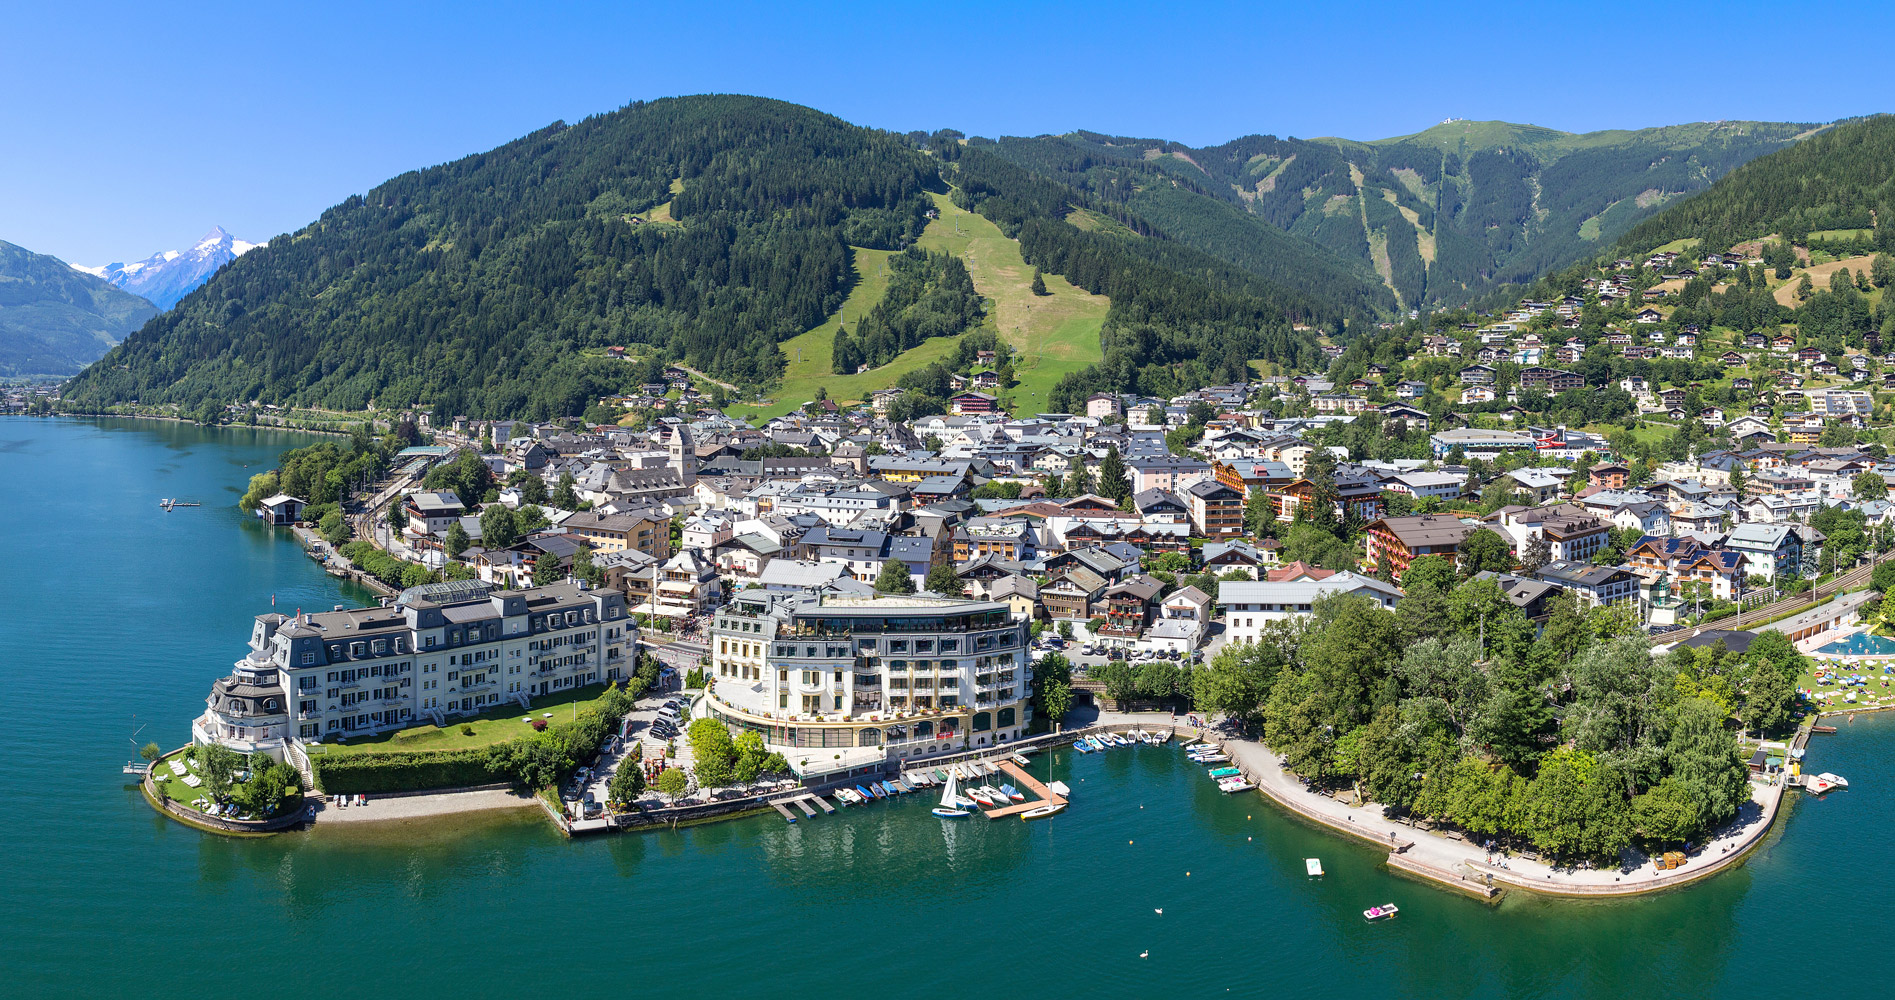 Zell am See city